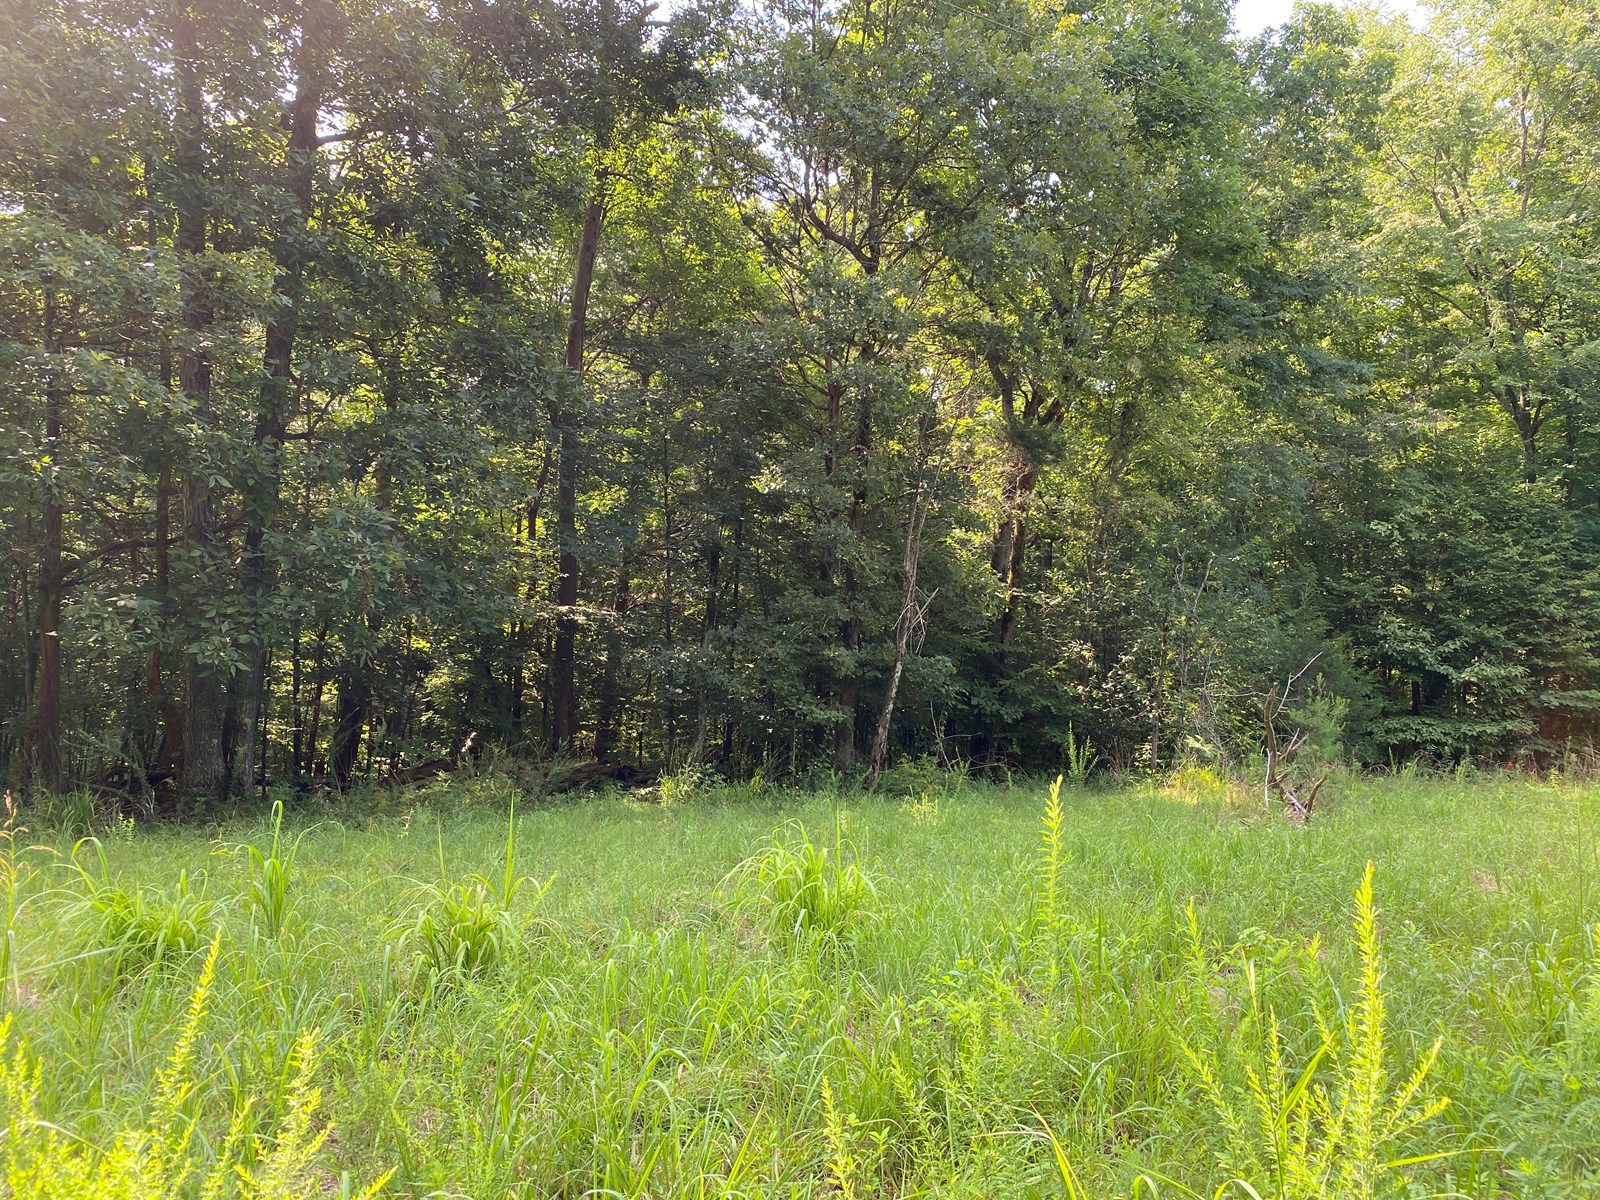 2 ACRES OF LAND FOR SALE IN TN, NICE BUILDING SITE, WOODED